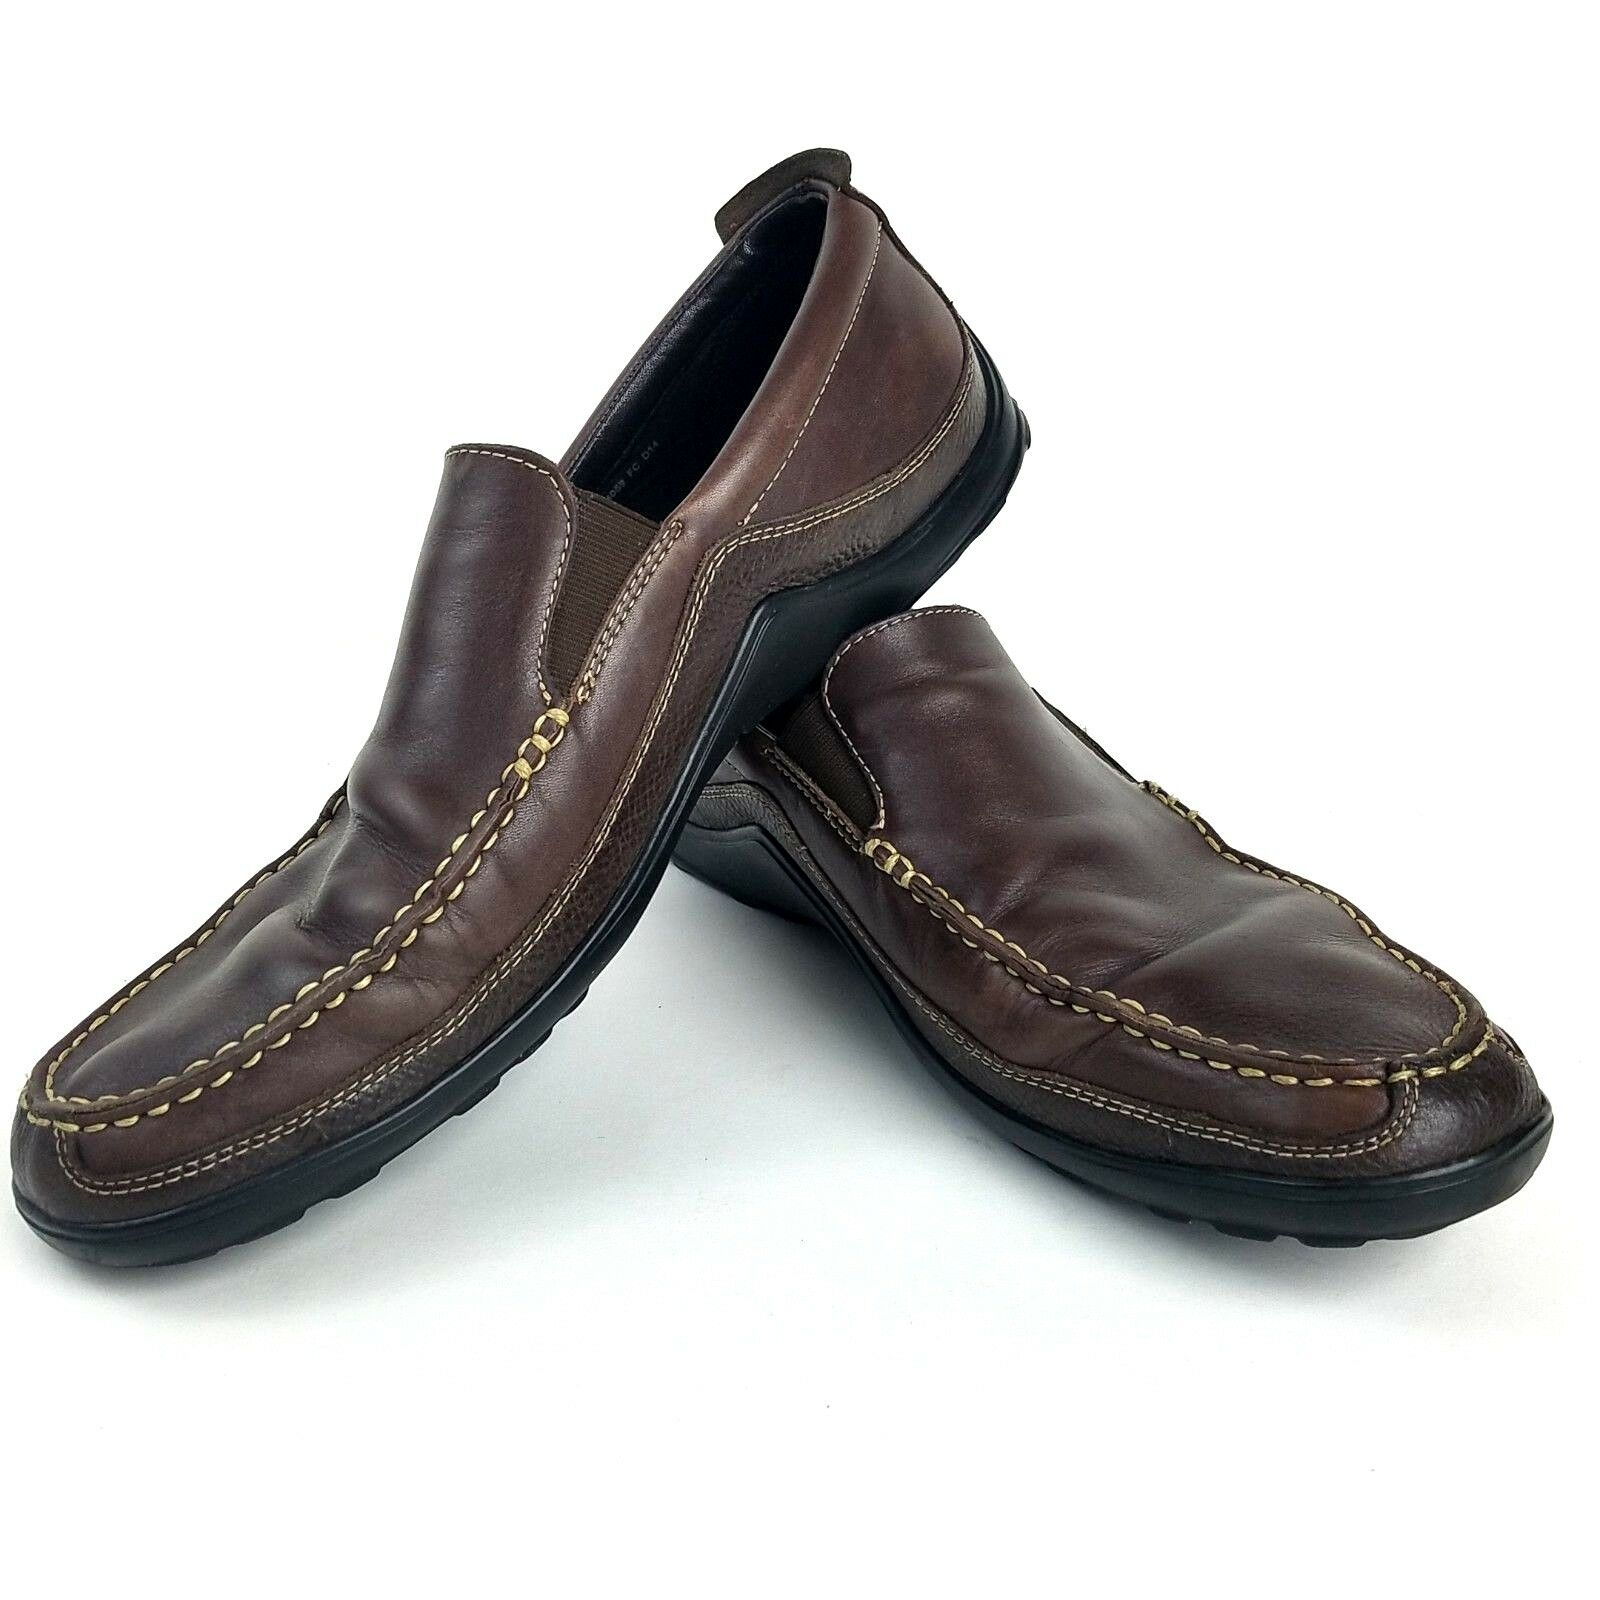 COLE HAAN Tucker Venetian C04059 Size 13M Brown Leather Loafers Mens shoes